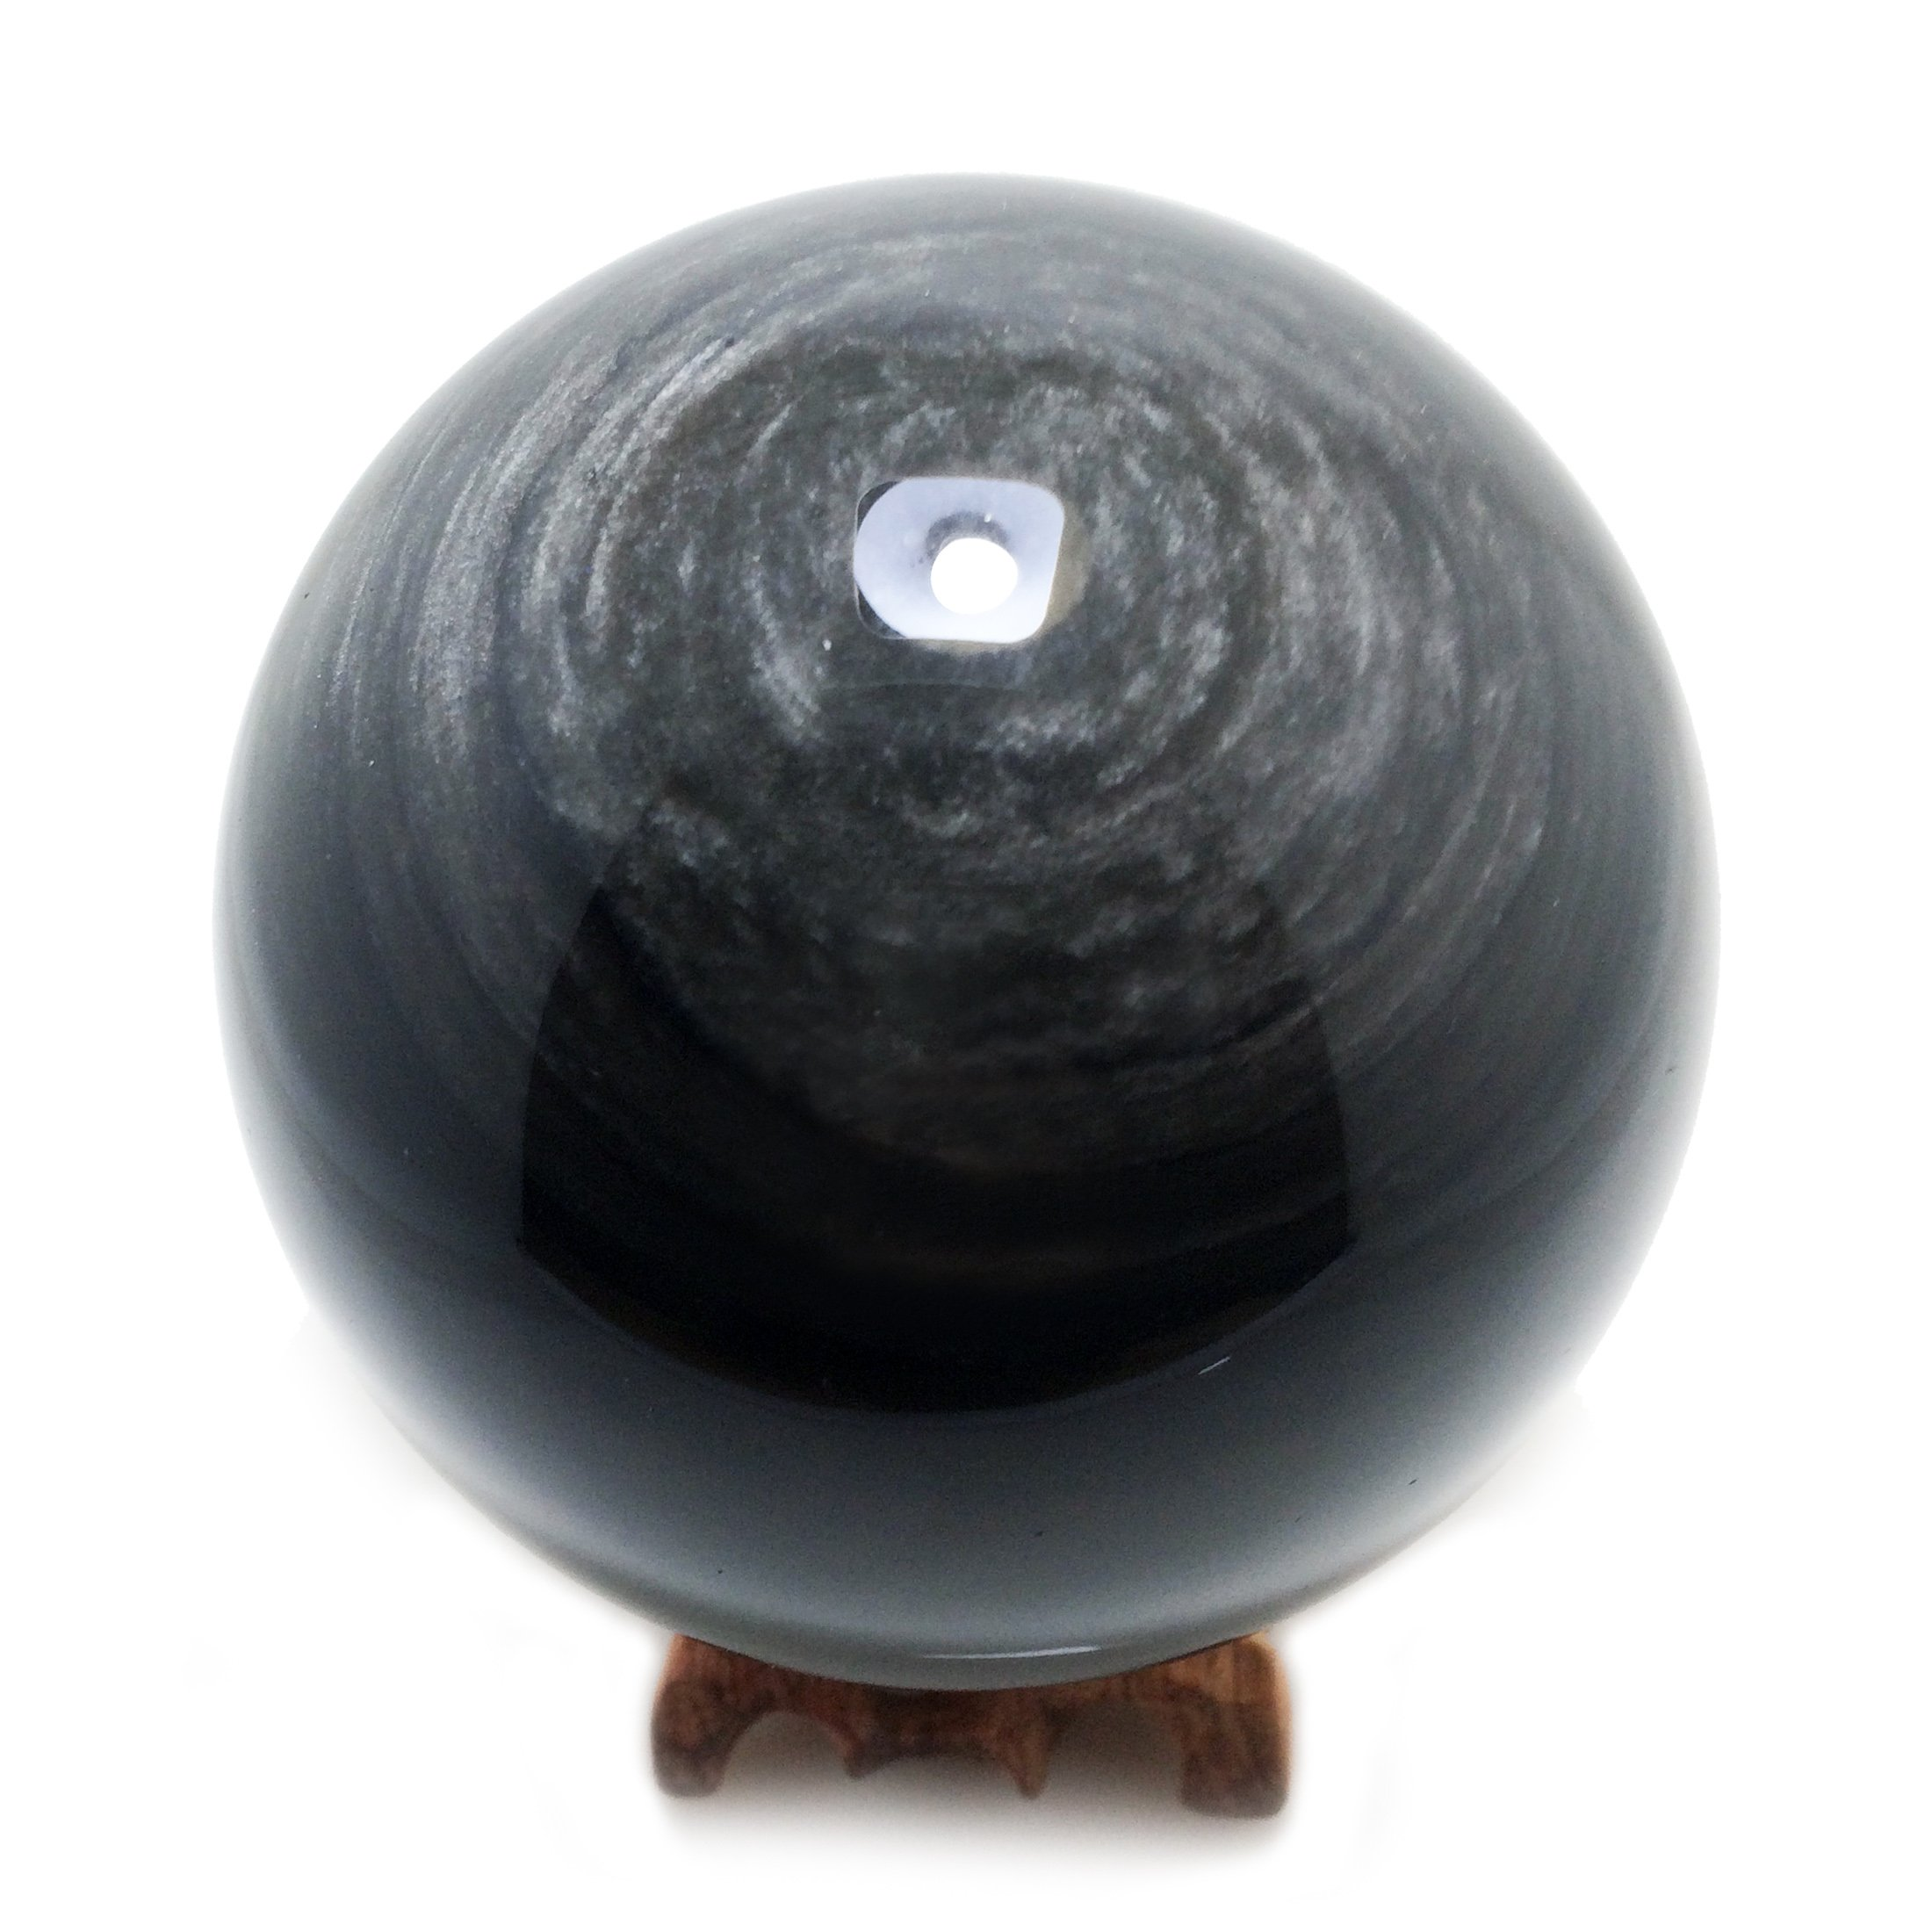 Silver Obsidian Crystal Spheres, 60mm / 2.4'' Diameter, Rare Protective Stone Balls for Decoration, Healing, Meditation, Feng Shui, Hand-Made by Mina Heal